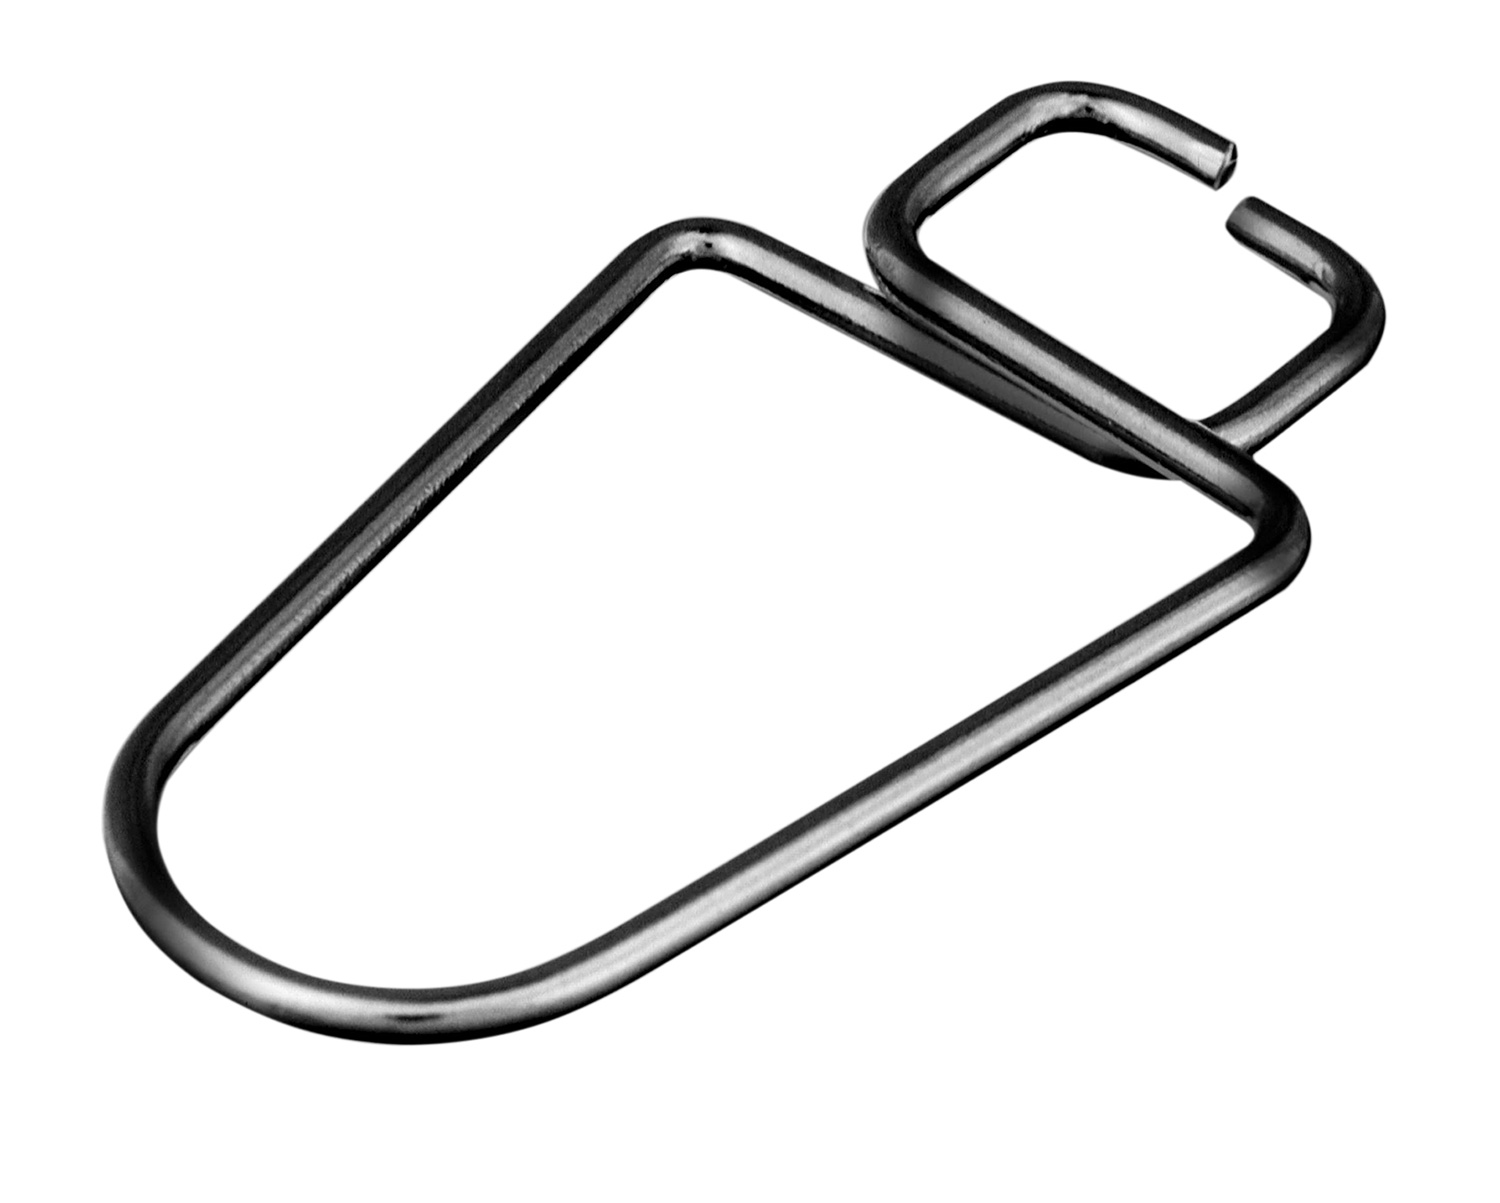 Drahtbügelklemme (Wire Formed Clamp)